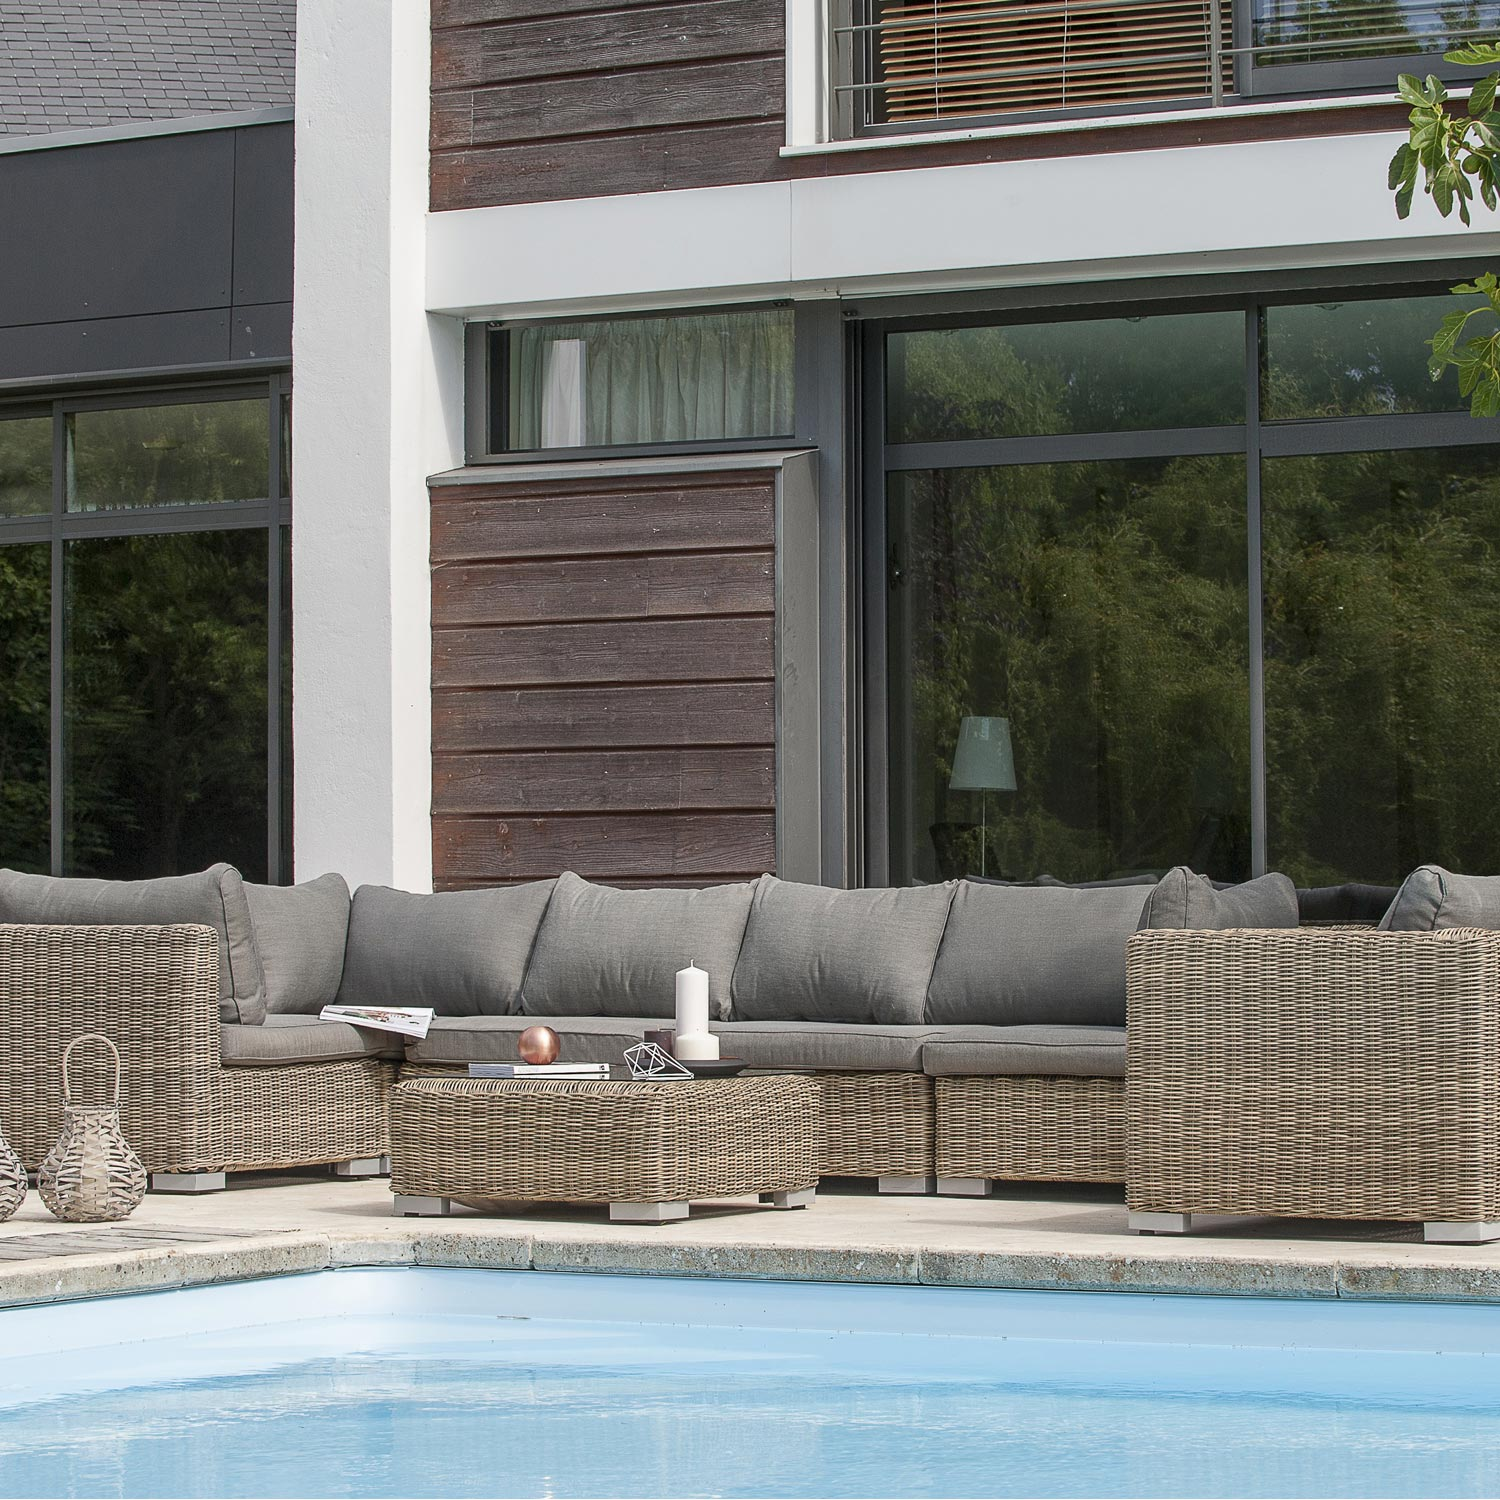 Salon jardin montmartre 1 fauteuil 3modules d 39 angle 2 for Leroy merlin sofas jardin